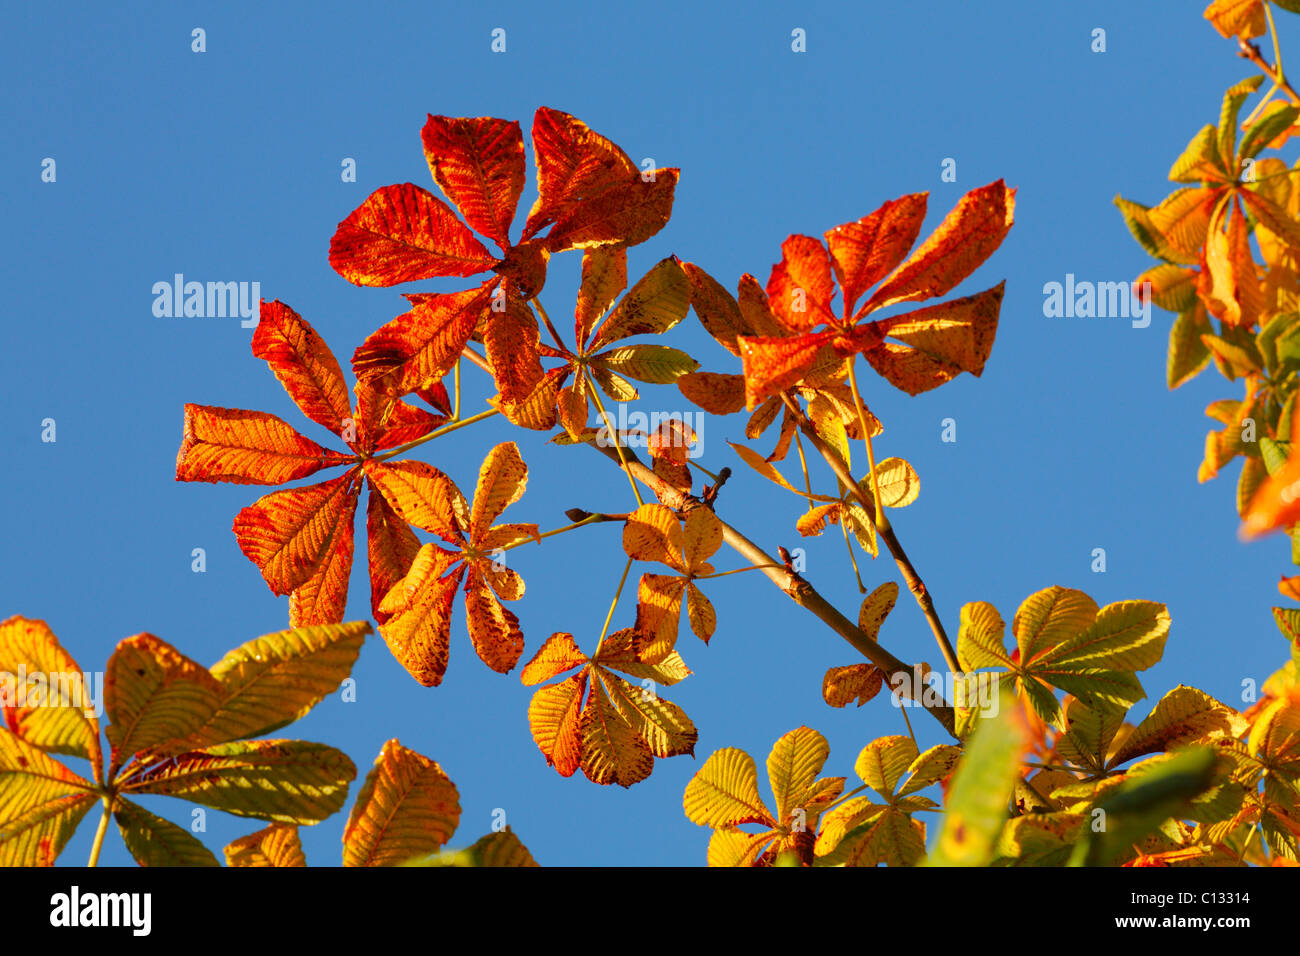 Autumn leaves of Horse Chestnut (Aesculus hippocastanum). Powys, Wales. October. - Stock Image